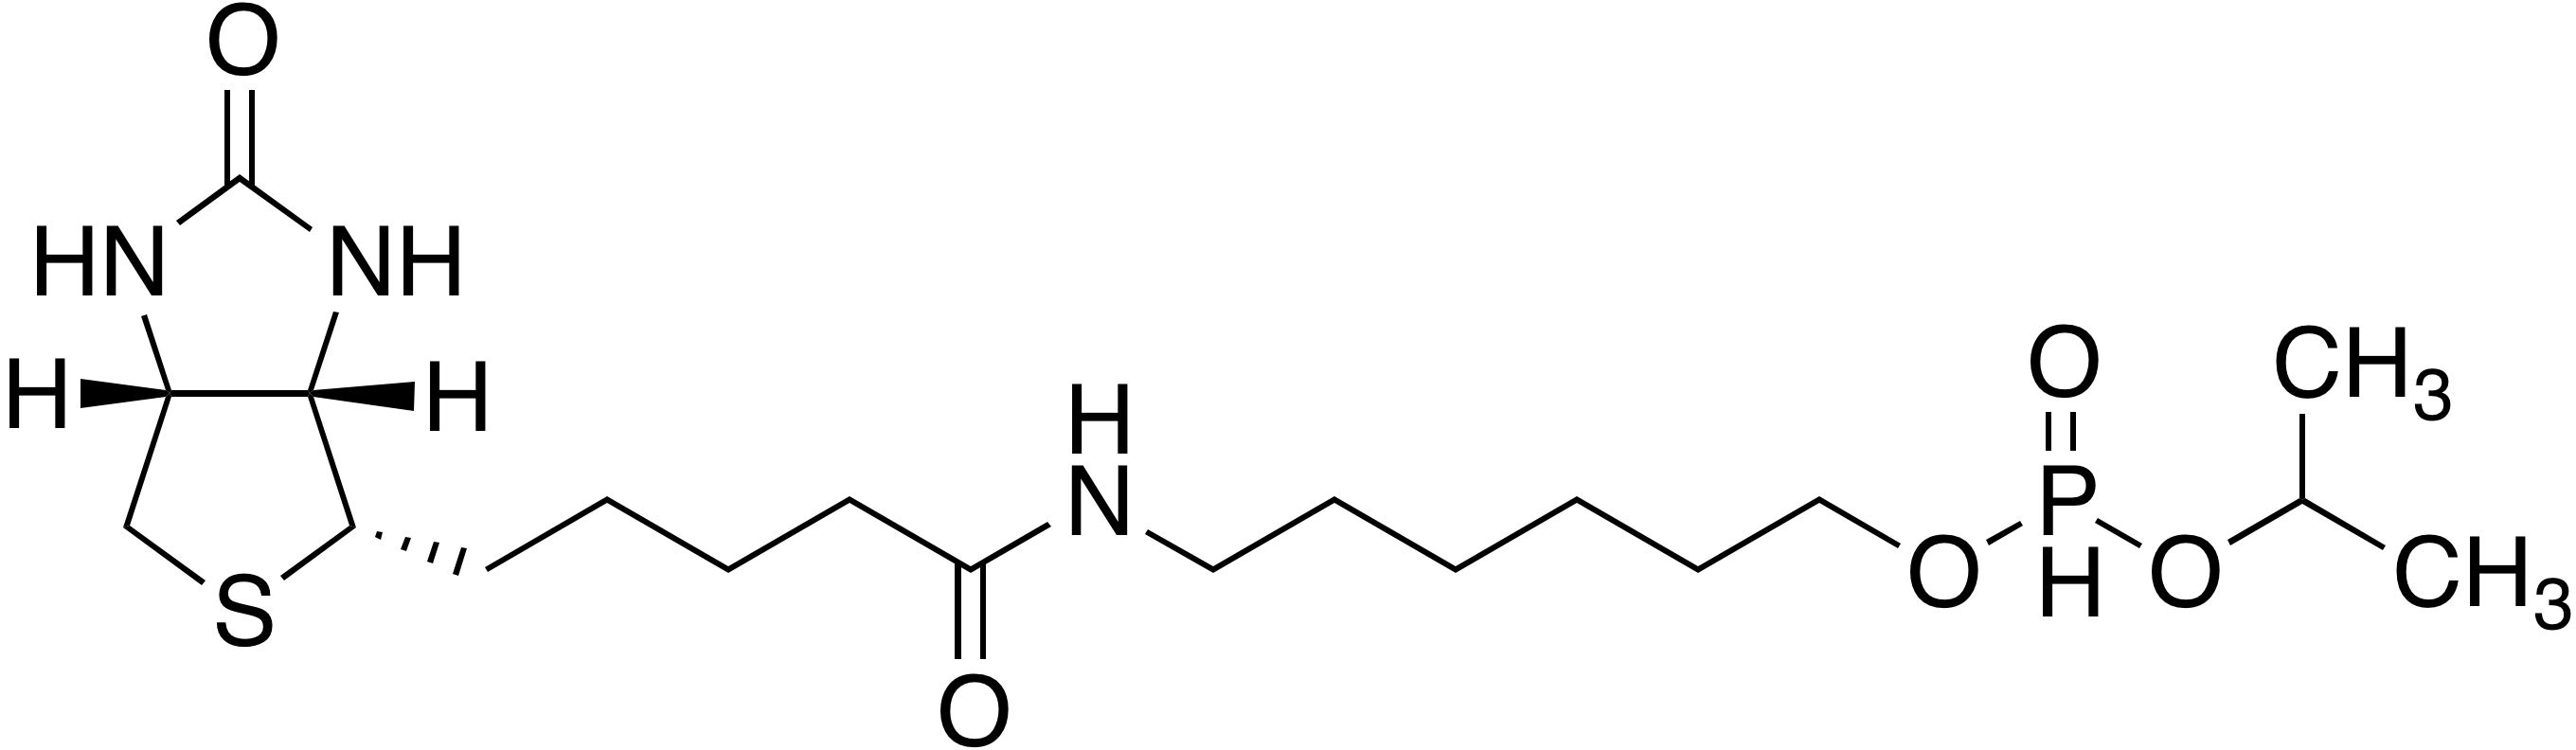 6-N-Biotinylaminohexyl Isopropyl hydrogenphosphonate